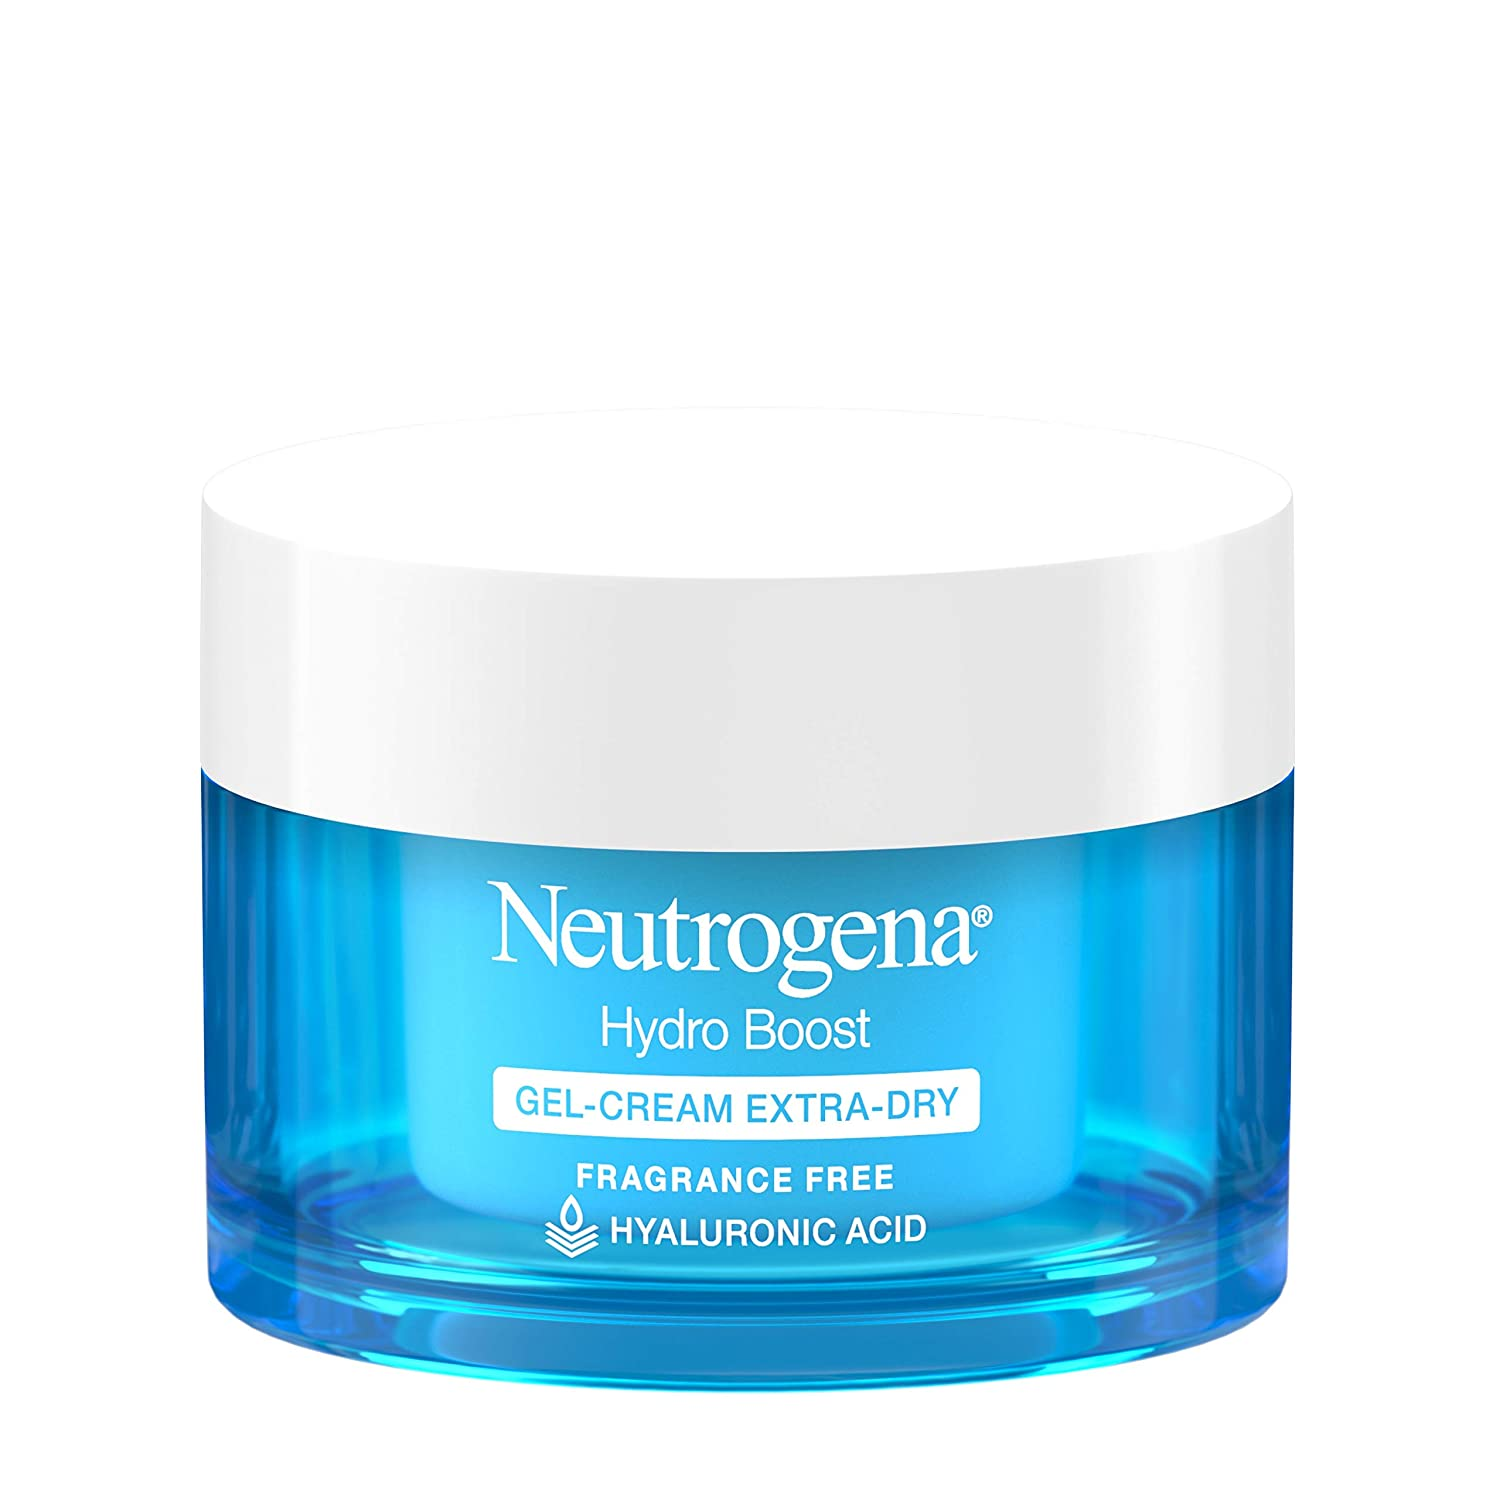 Neutrogena Hydro Boost Hyaluronic Acid Hydrating Gel-Cream Face Moisturizer to Hydrate & Smooth Extra-Dry Skin, Oil-Free, Fragrance-Free,...